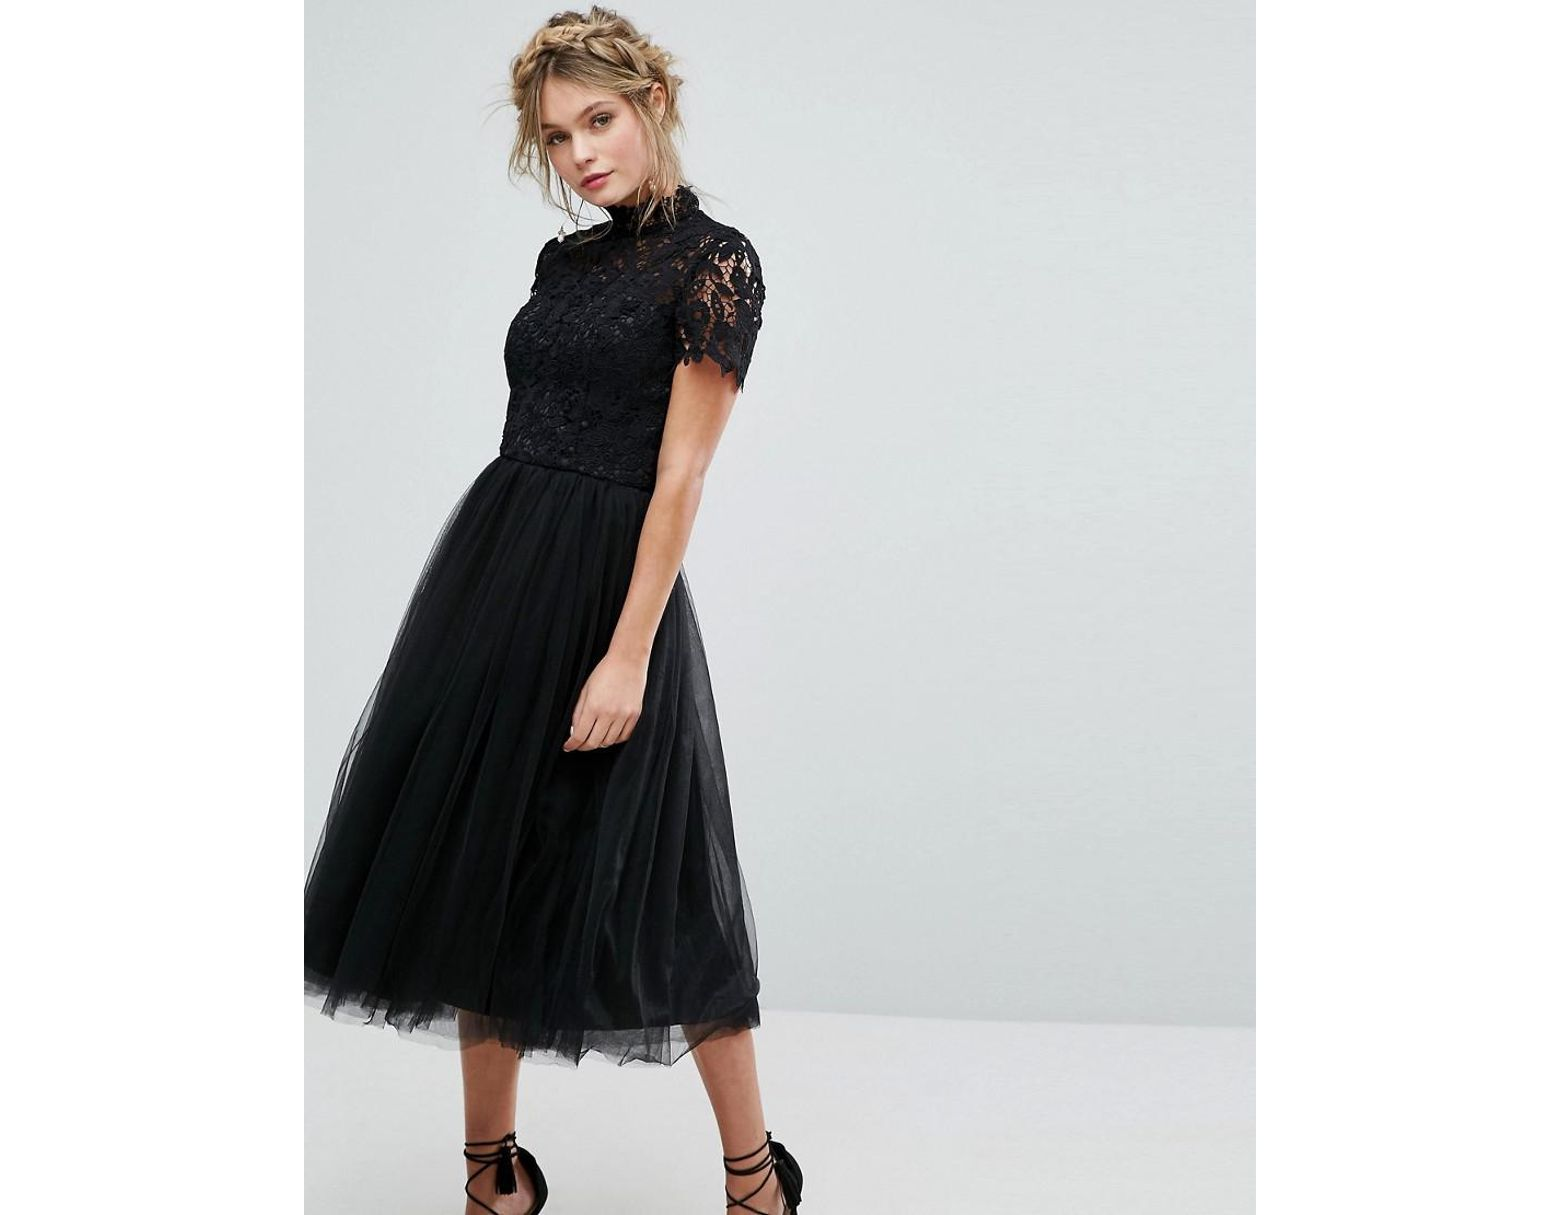 3c64cba151 Chi Chi London High Neck Lace Midi Dress With Tulle Skirt In Black in Black  - Lyst